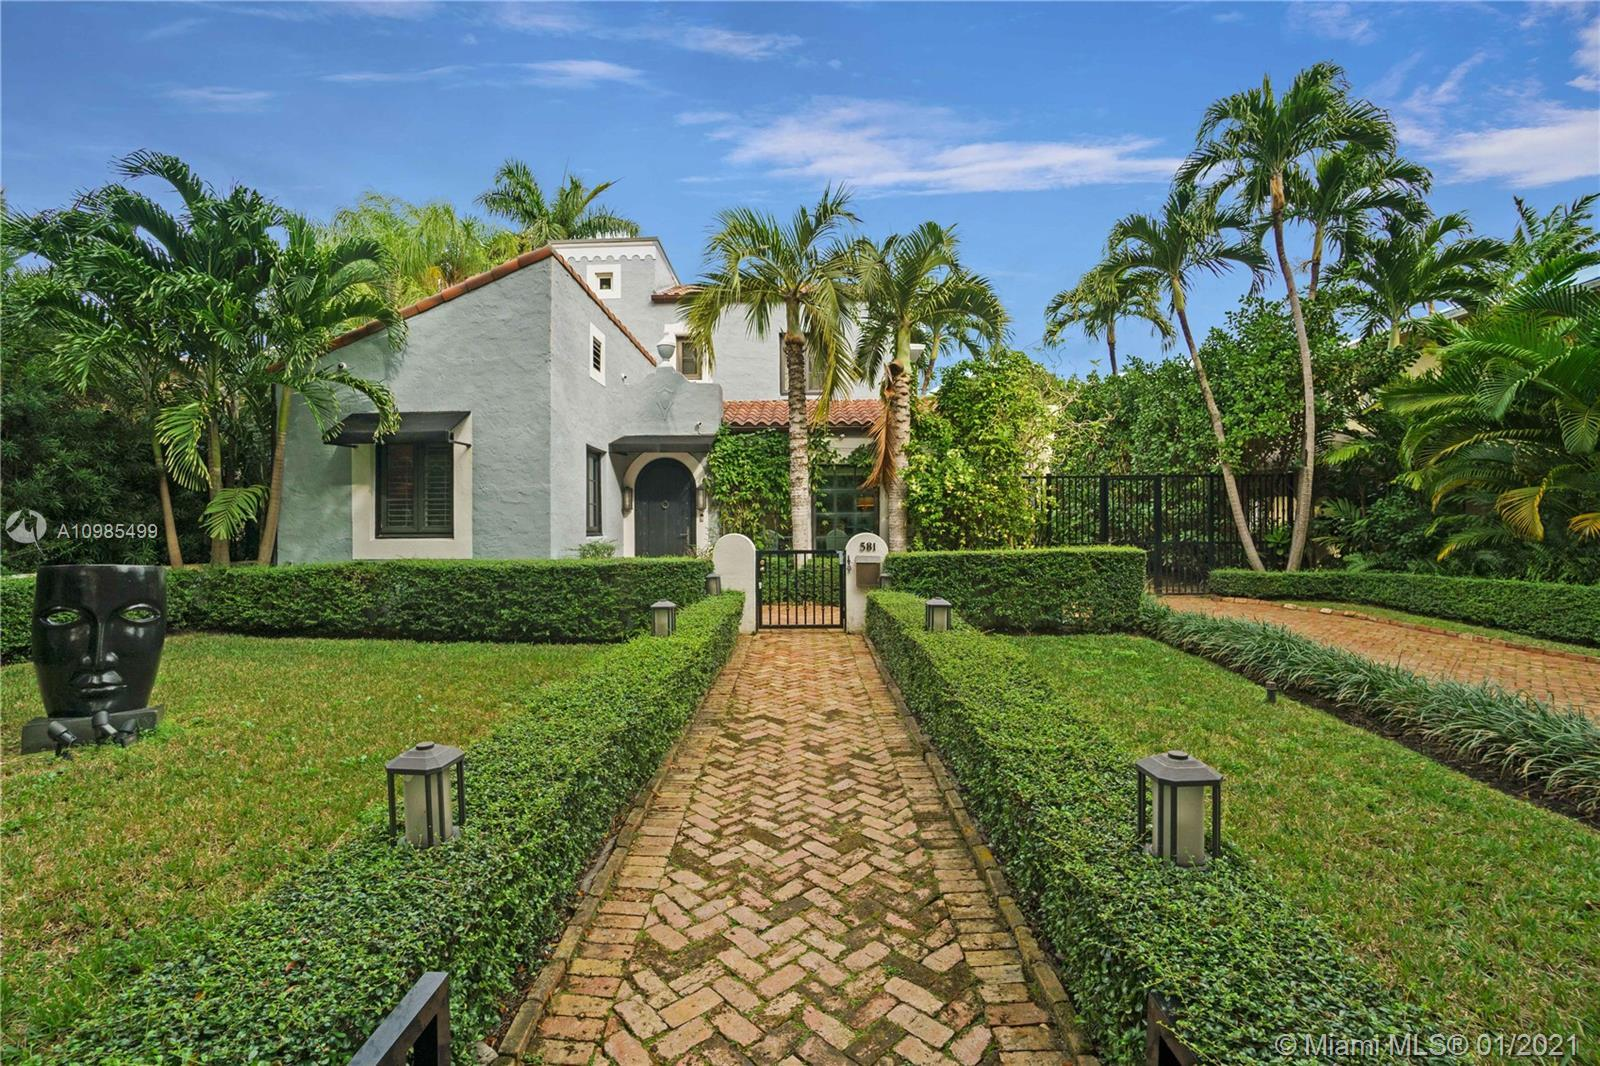 BEAUTIFUL RESTORED CLASSICAL JEWEL IN THE HISTORIC GATED COMMUNITY OF BAYSHORE MORNINGSIDE, FEATURIN